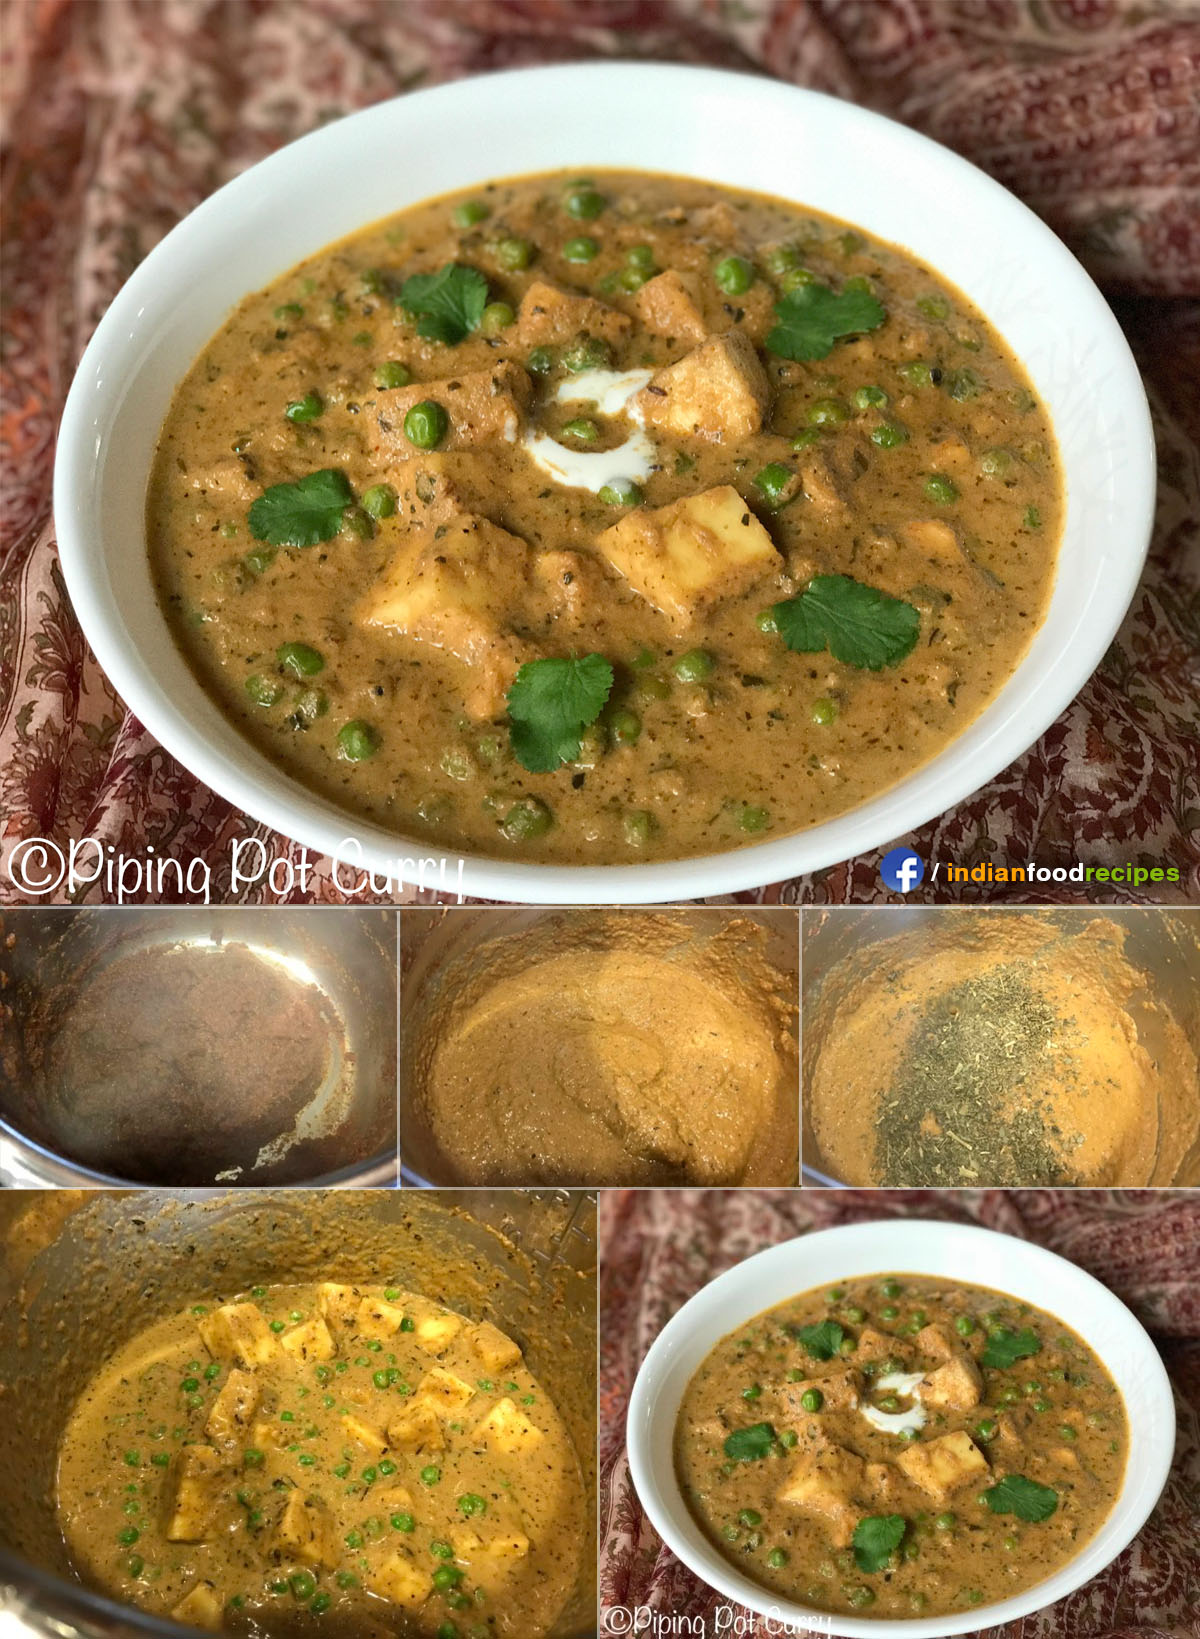 Instant Pot Mutter Paneer Masala (Green Peas & Cottage Cheese Curry) recipe step by step